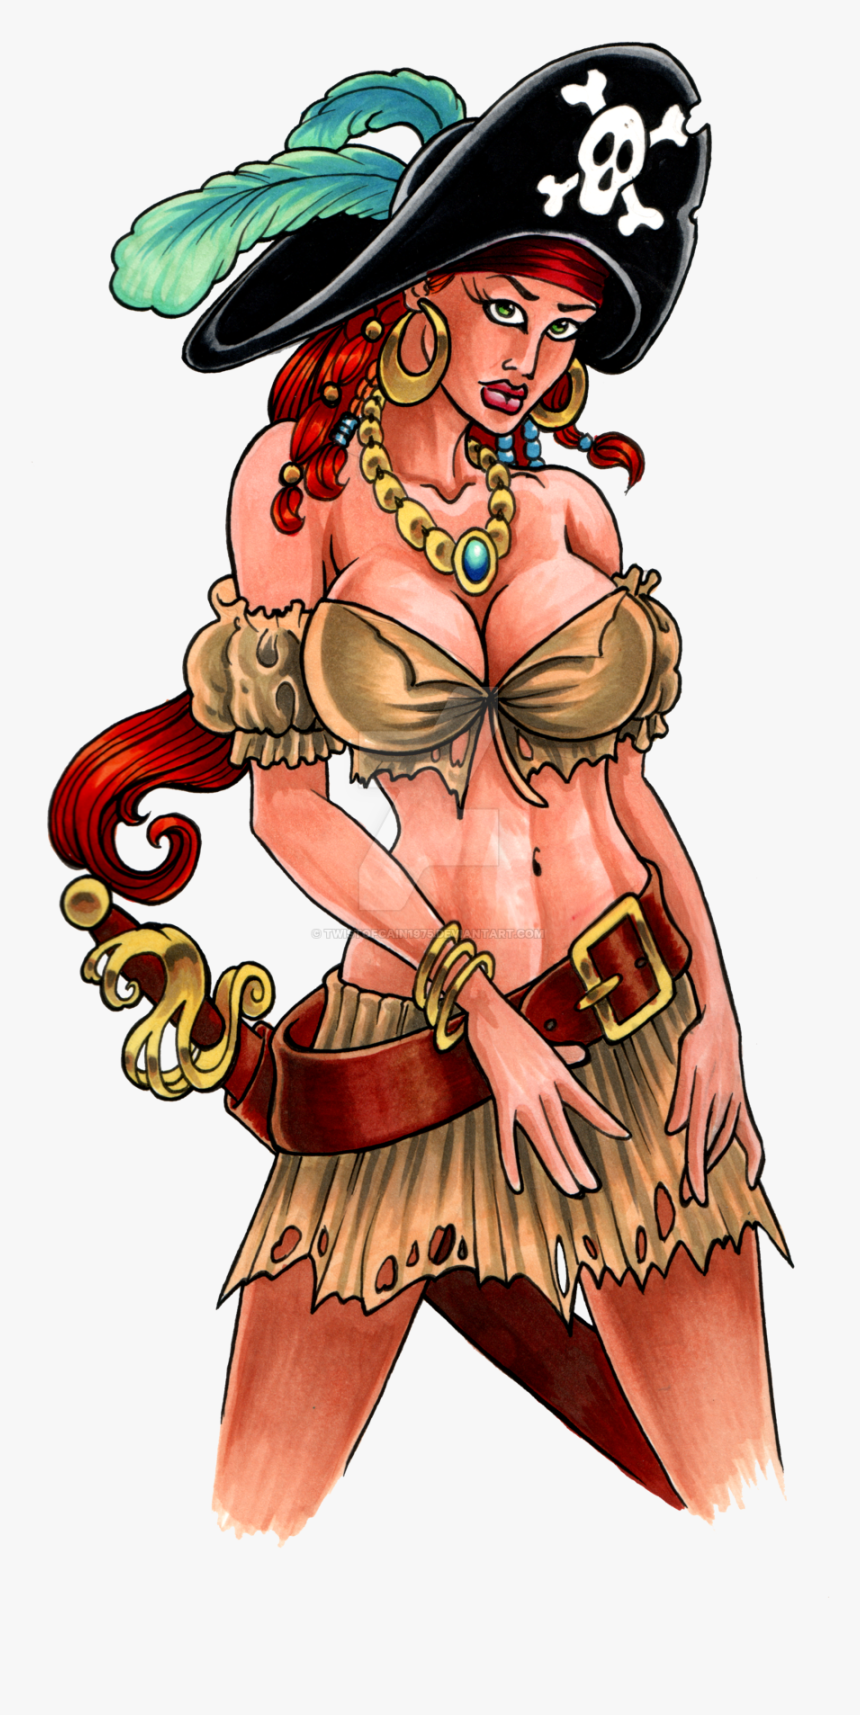 Another Pirate Girl By Twistofcain1975 Another Pirate - Hot Girls Cartoon Image Hd, HD Png Download, Free Download